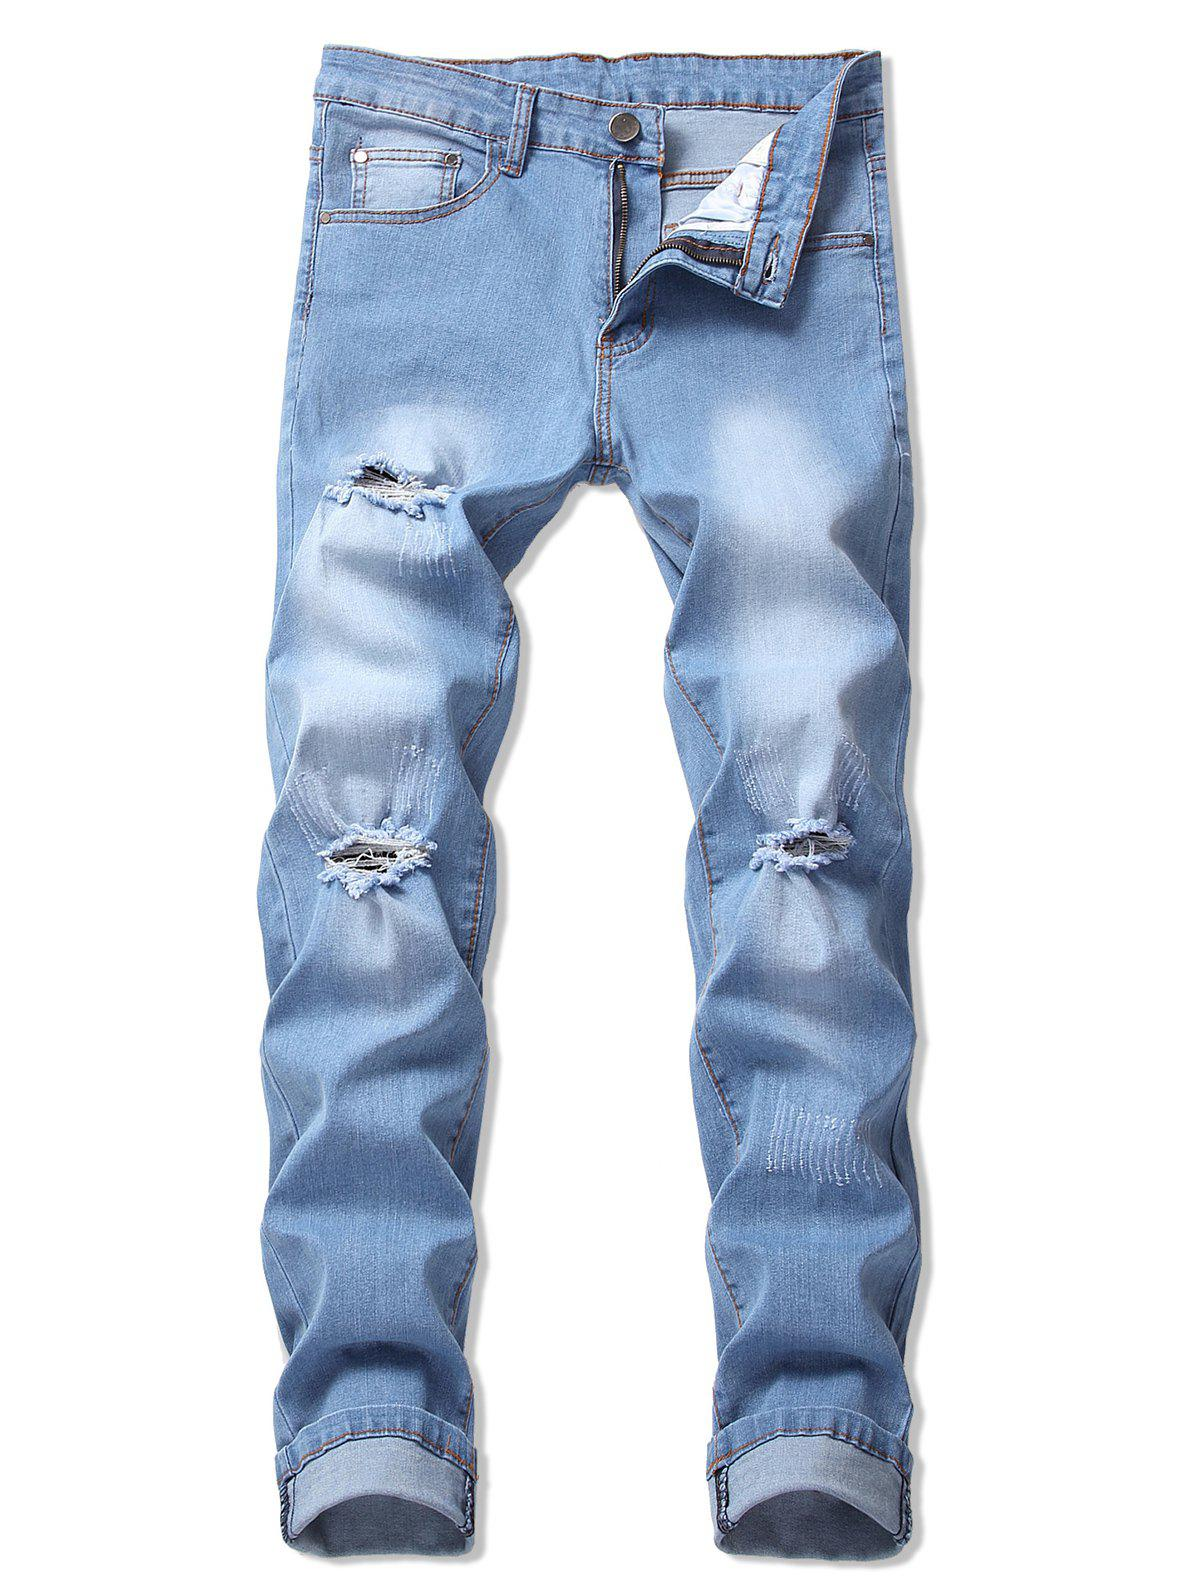 Casual Ripped Design Flanging Jeans - JEANS BLUE 34